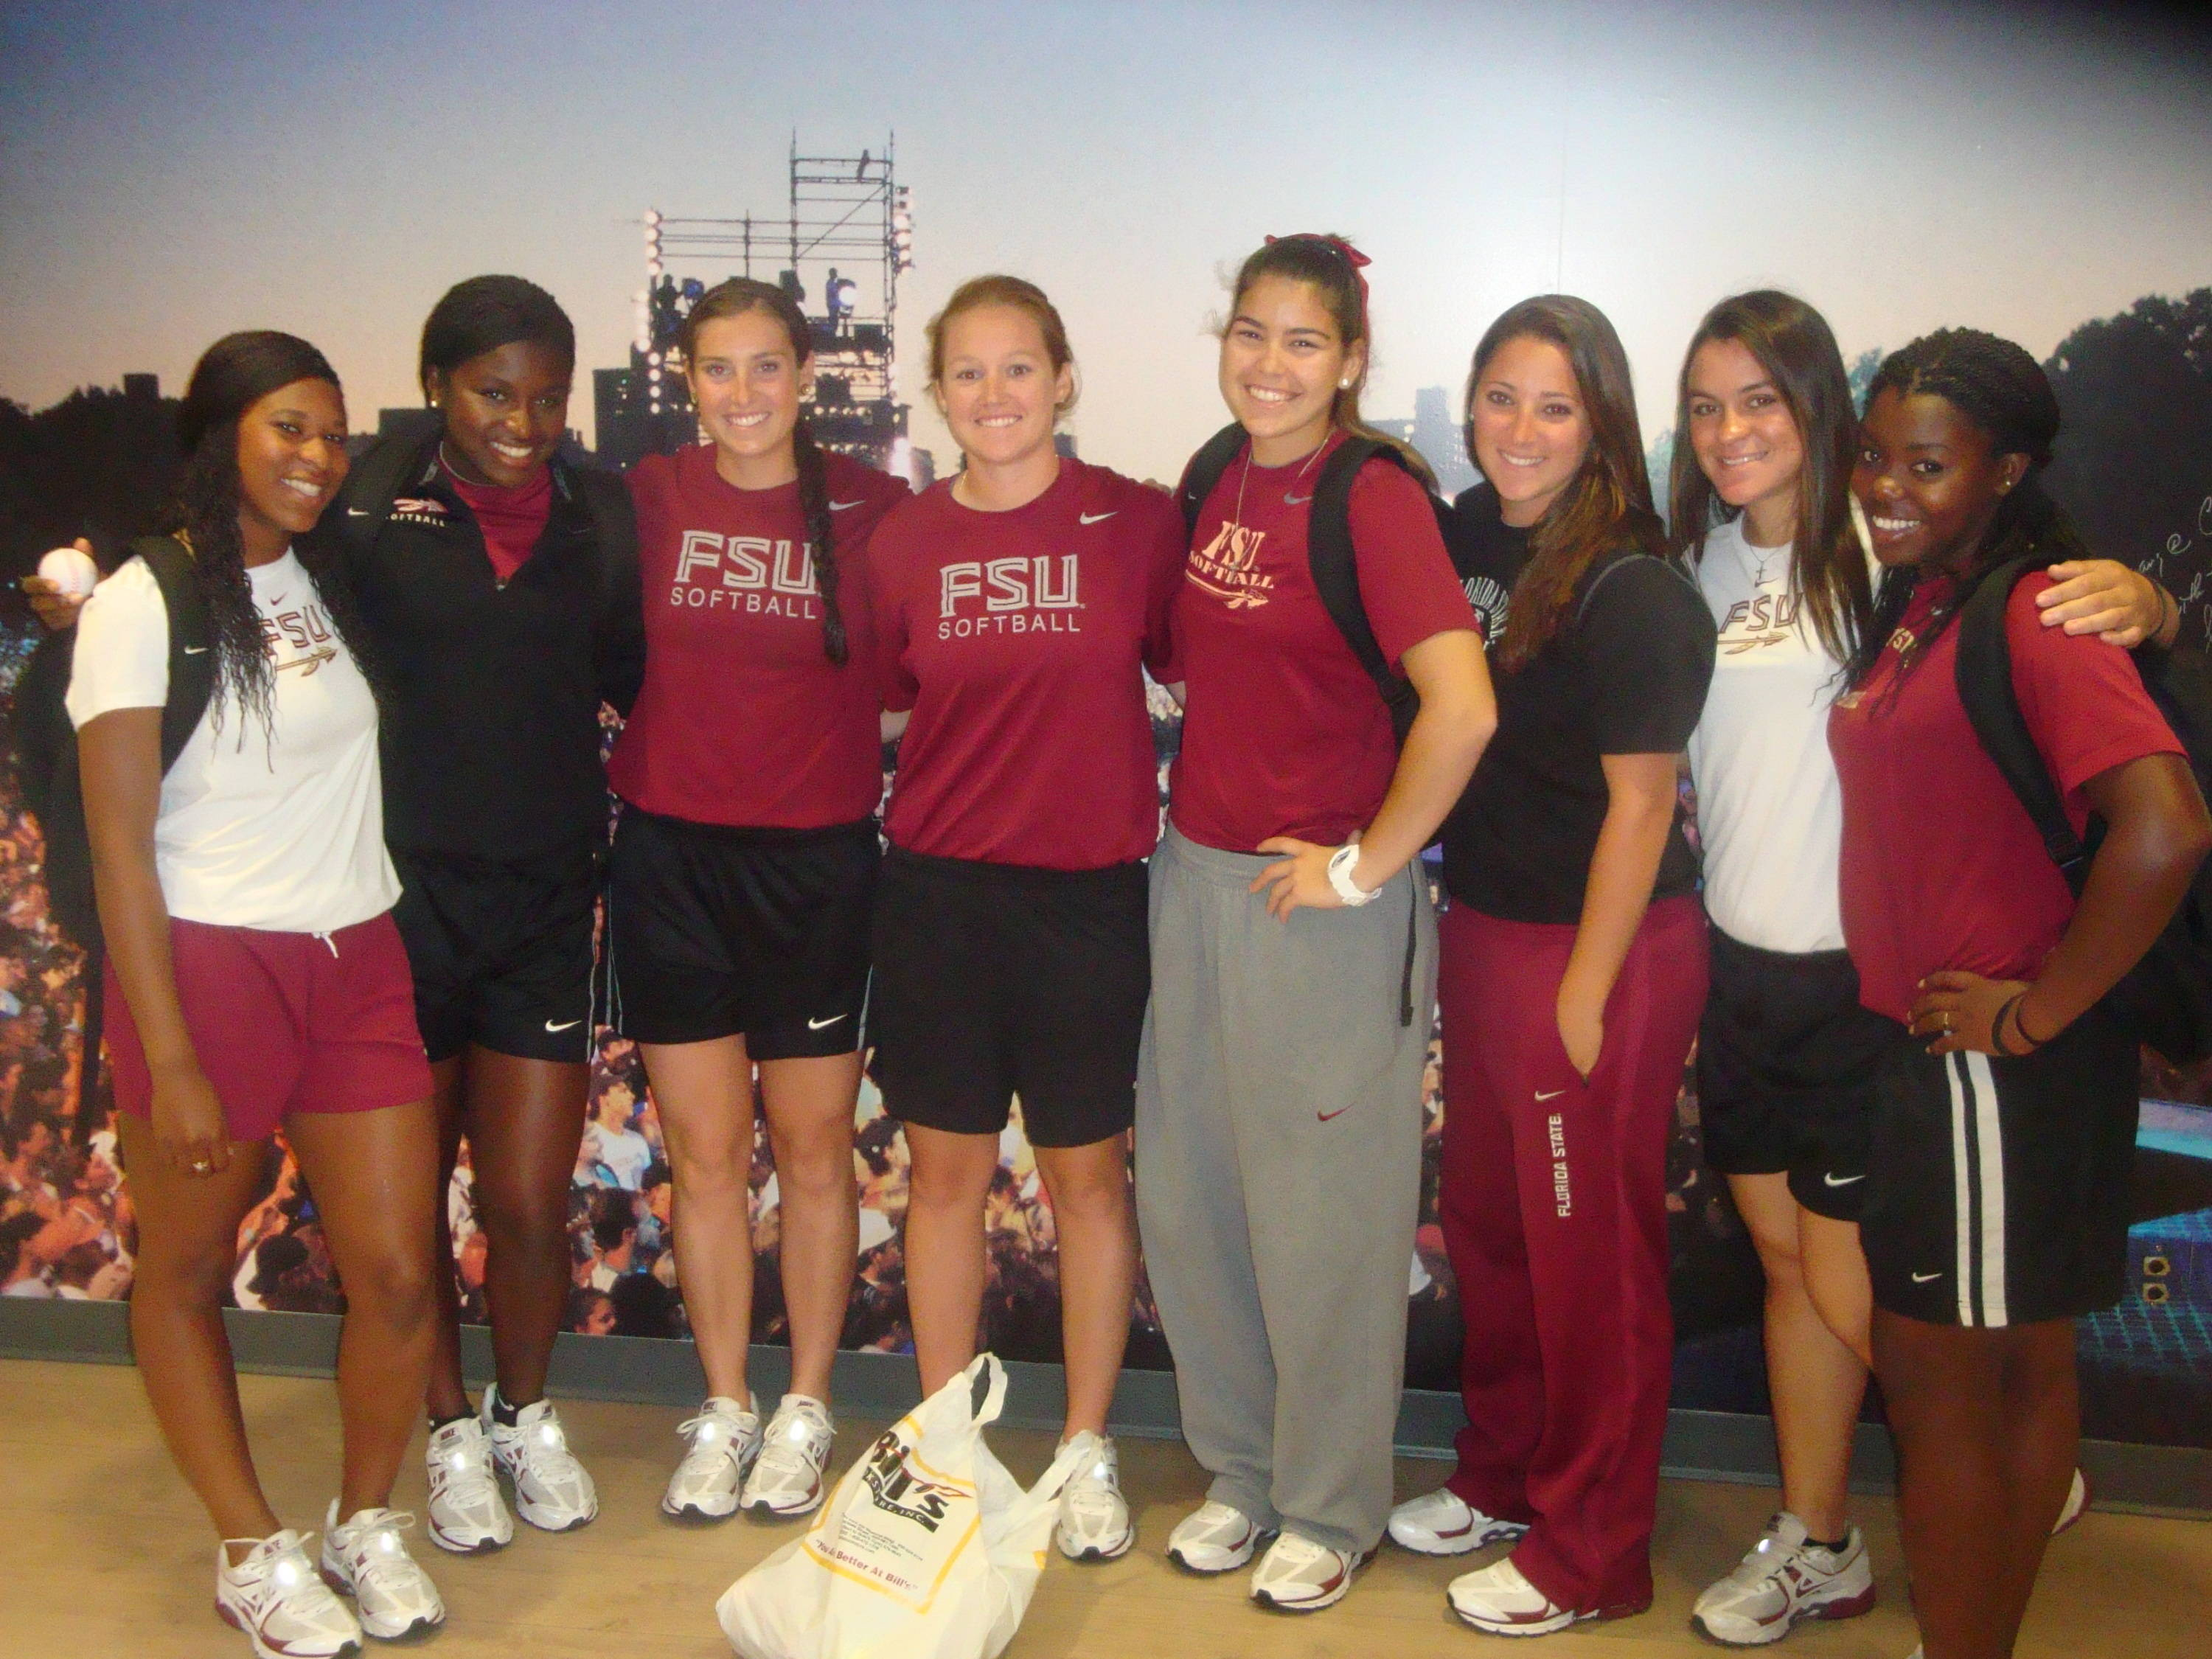 The FSU softball squad poses in one of the nicely designed rooms. They are eagerly waiting to have fun with the kids at the children's center!